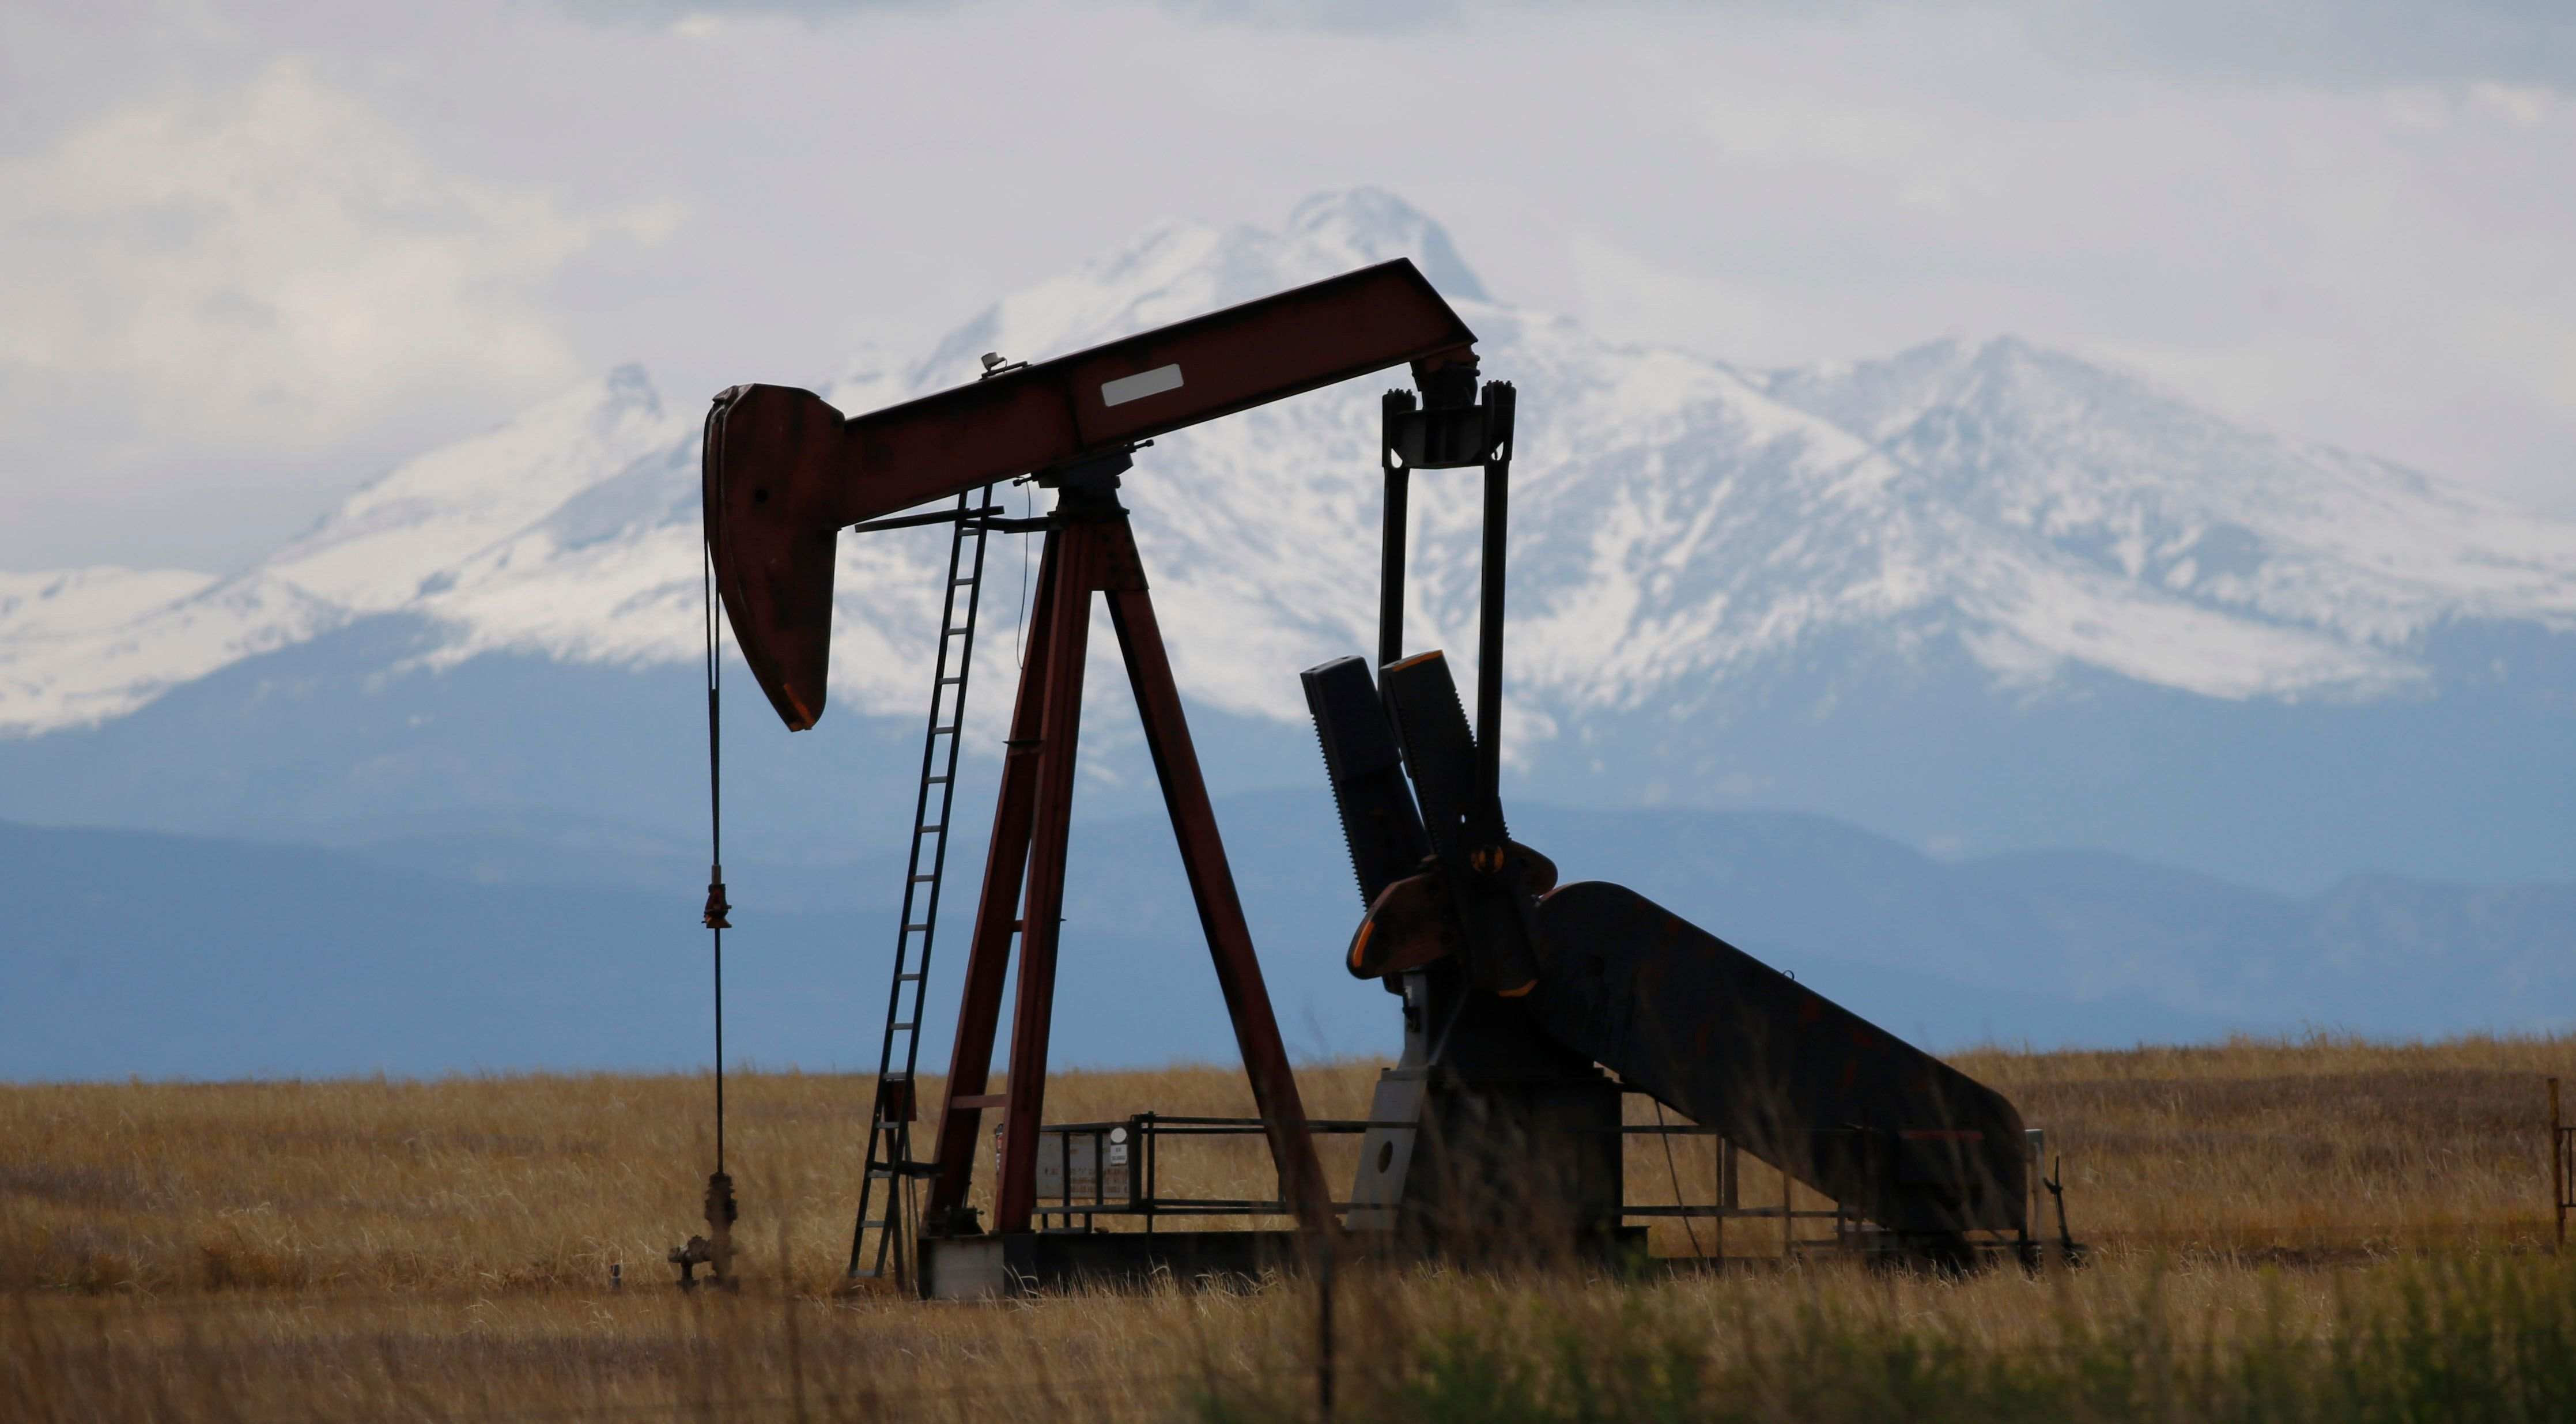 FILE - In this May 27, 2016, file photo, a pump jack works near Firestone, Colo. The Colorado Supreme Court is considering a high-stakes lawsuit over how much weight the state should give public health and the environment when regulating the oil and gas industry. (AP Photo/David Zalubowski, File)